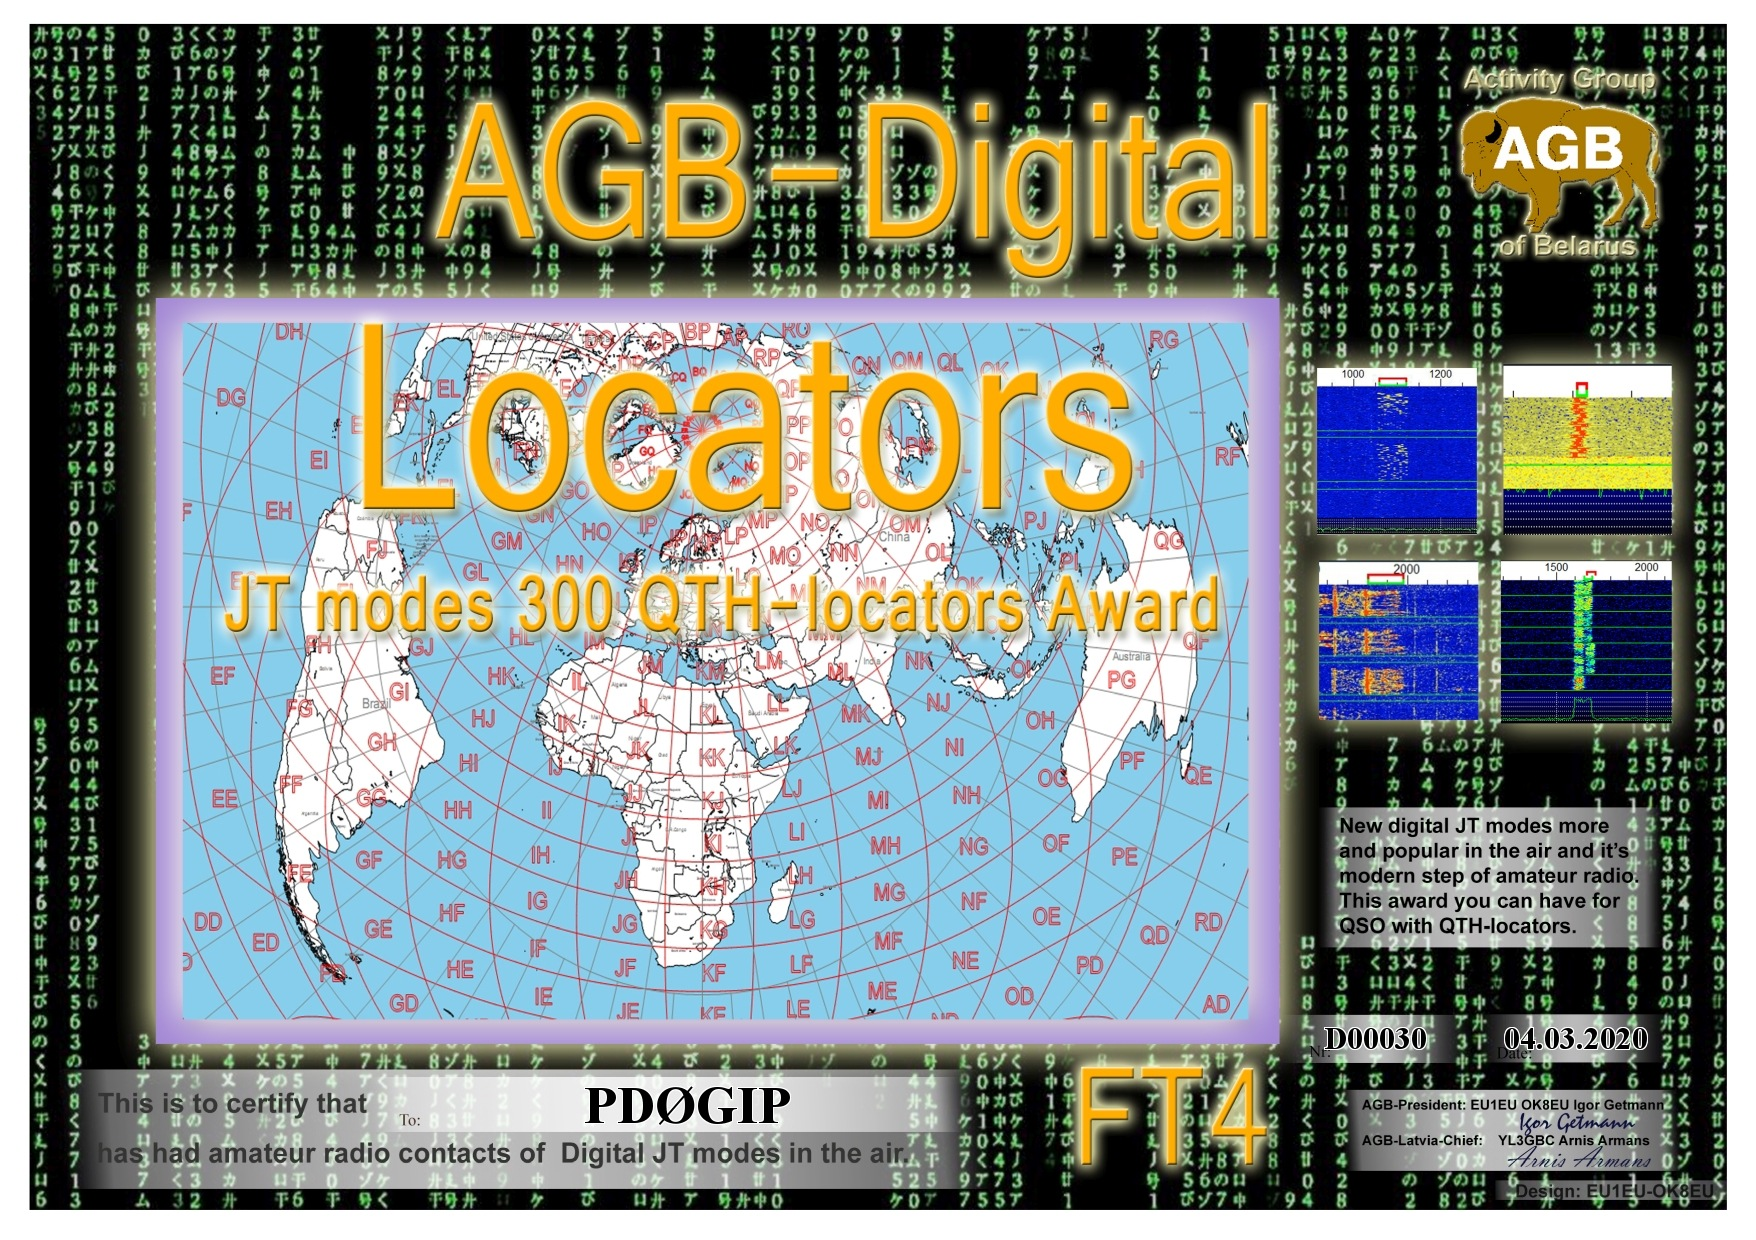 PD0GIP LOCATORS FT4 300 AGB